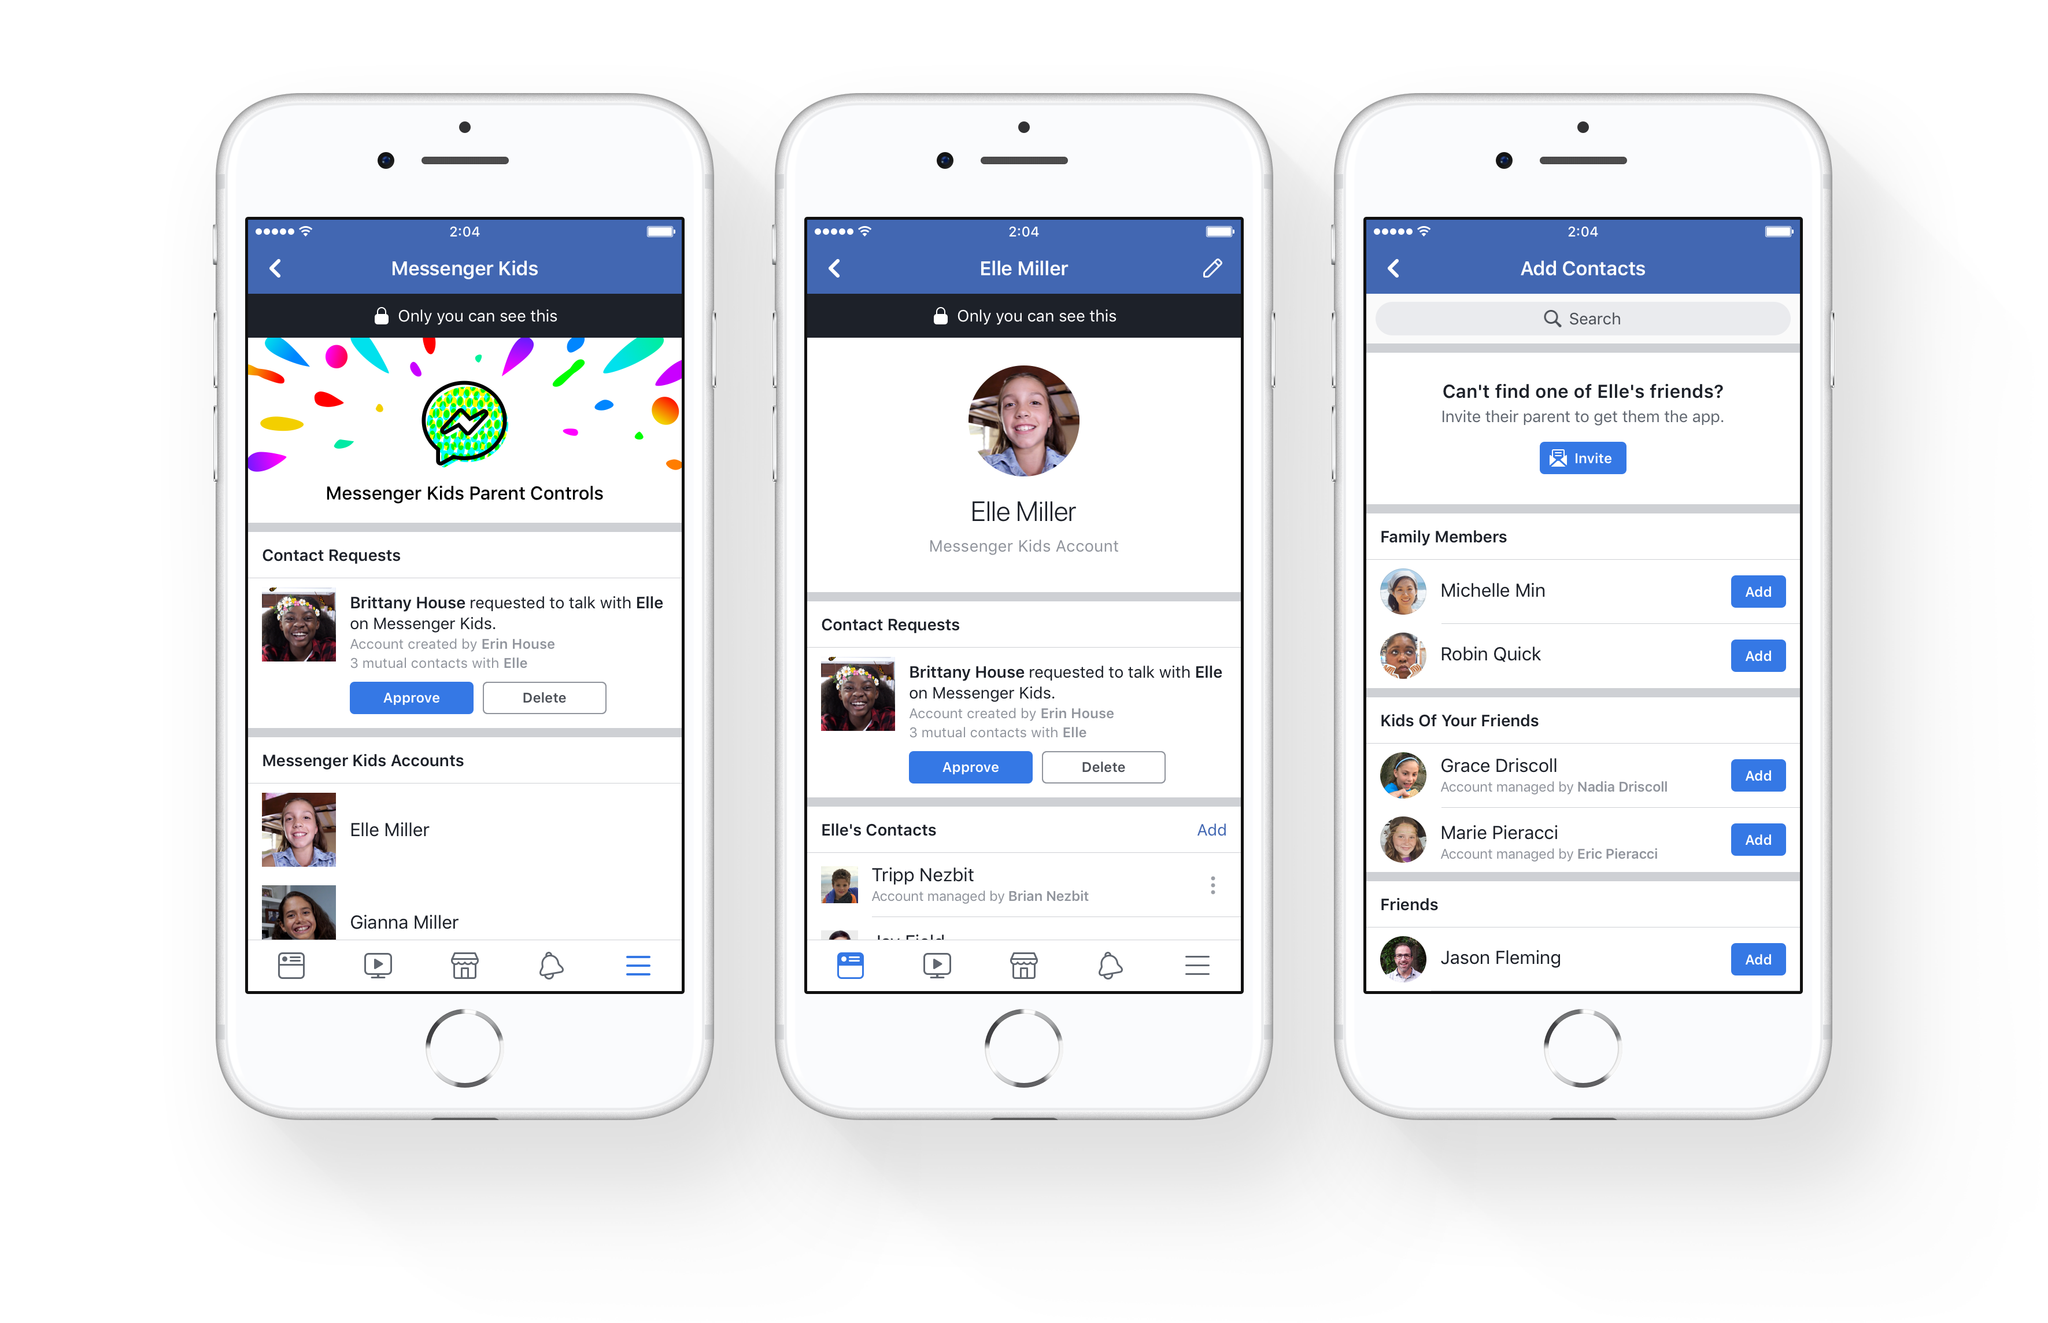 Techmeme: With Messenger Kids' launch, Facebook doesn't share how it